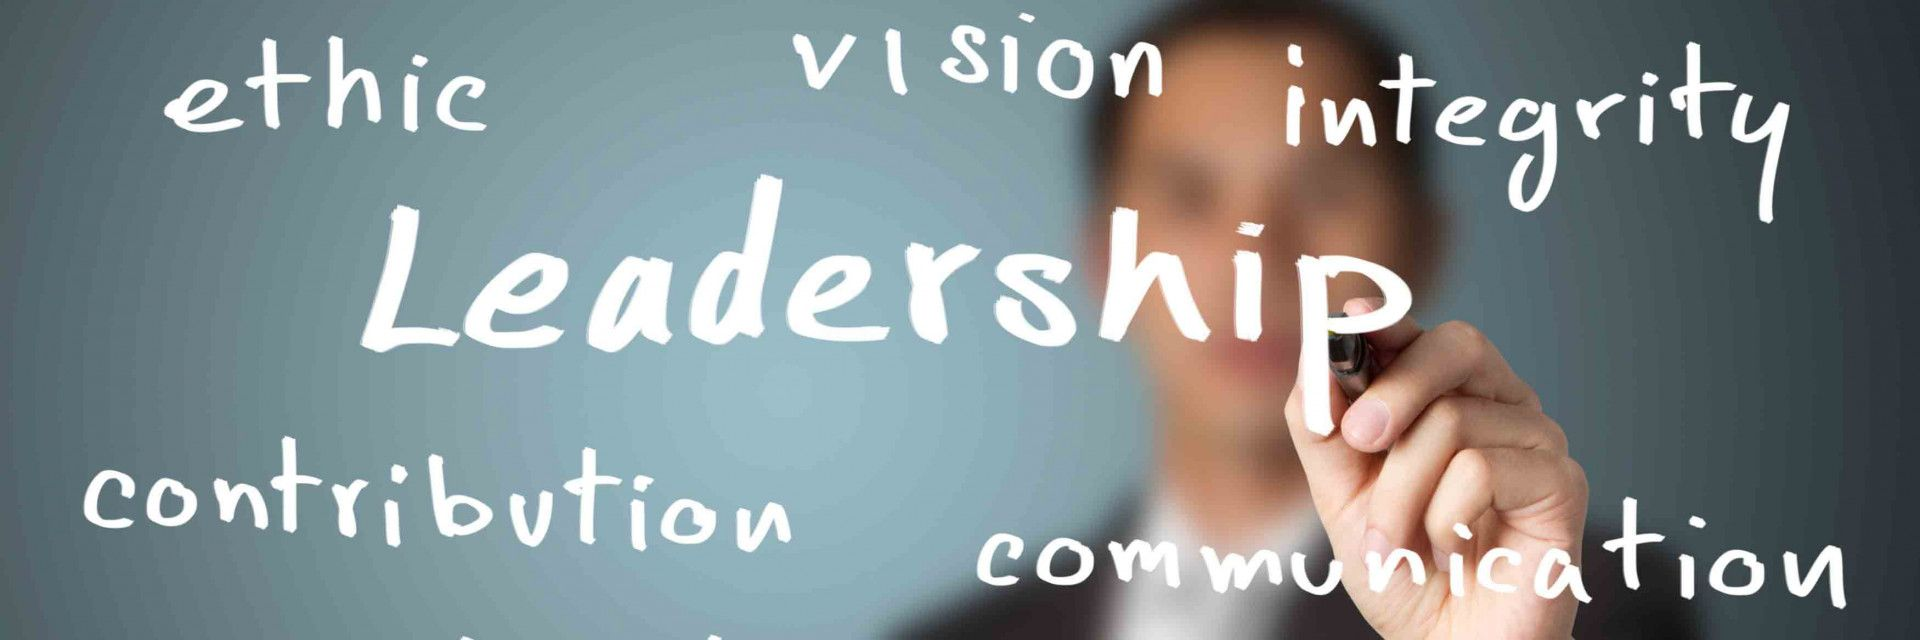 writing on board leadership in bold stock photo